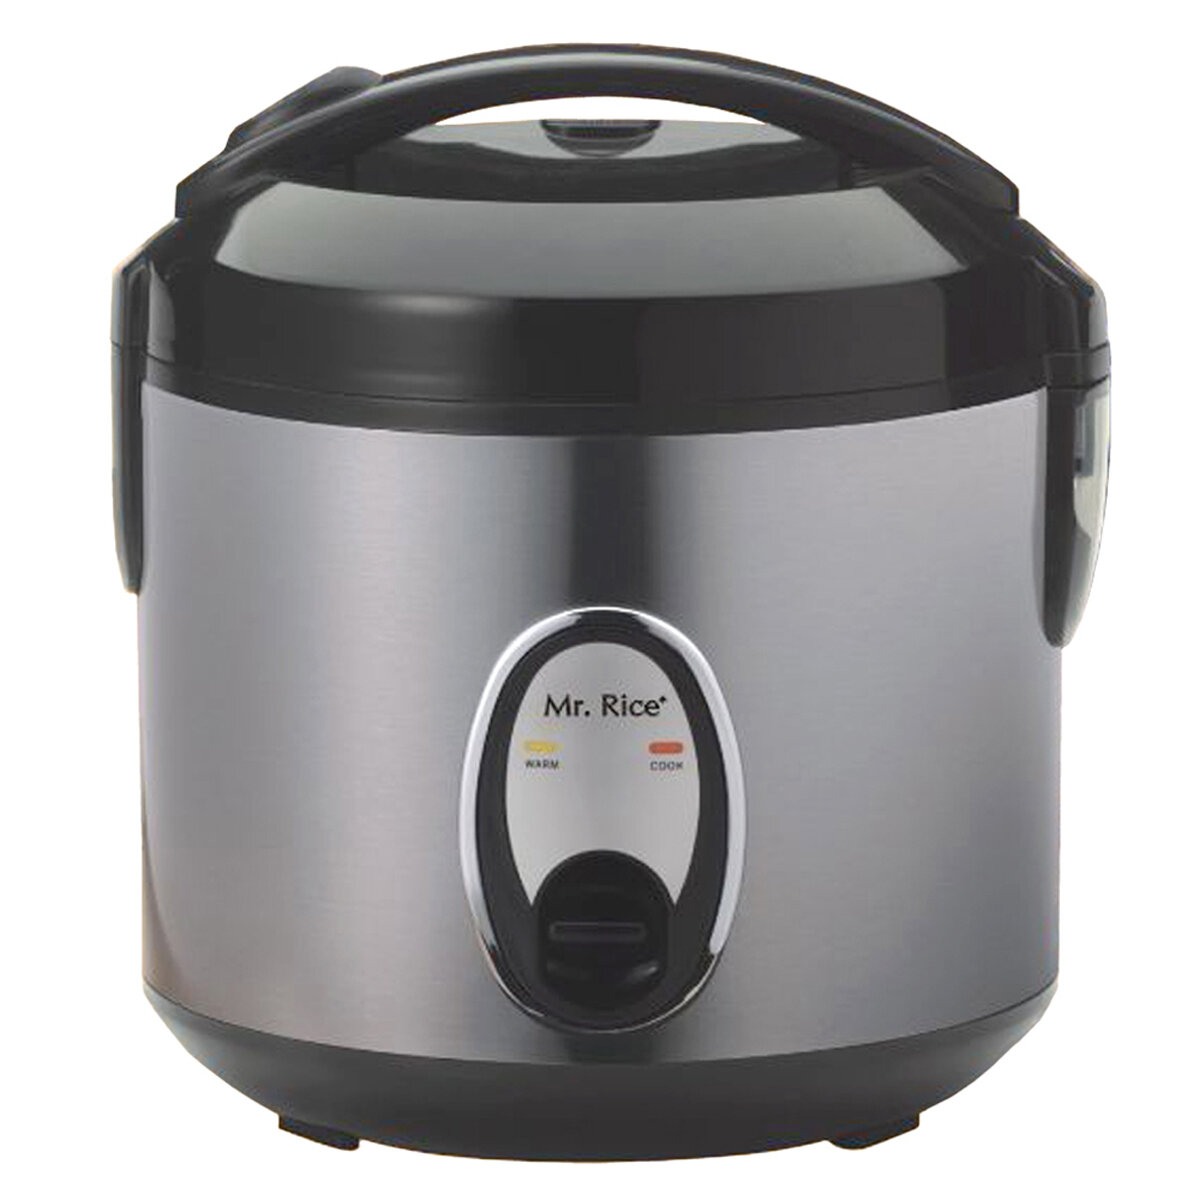 7c77cdc3233 Sunpentown Mr. Rice Rice Cooker